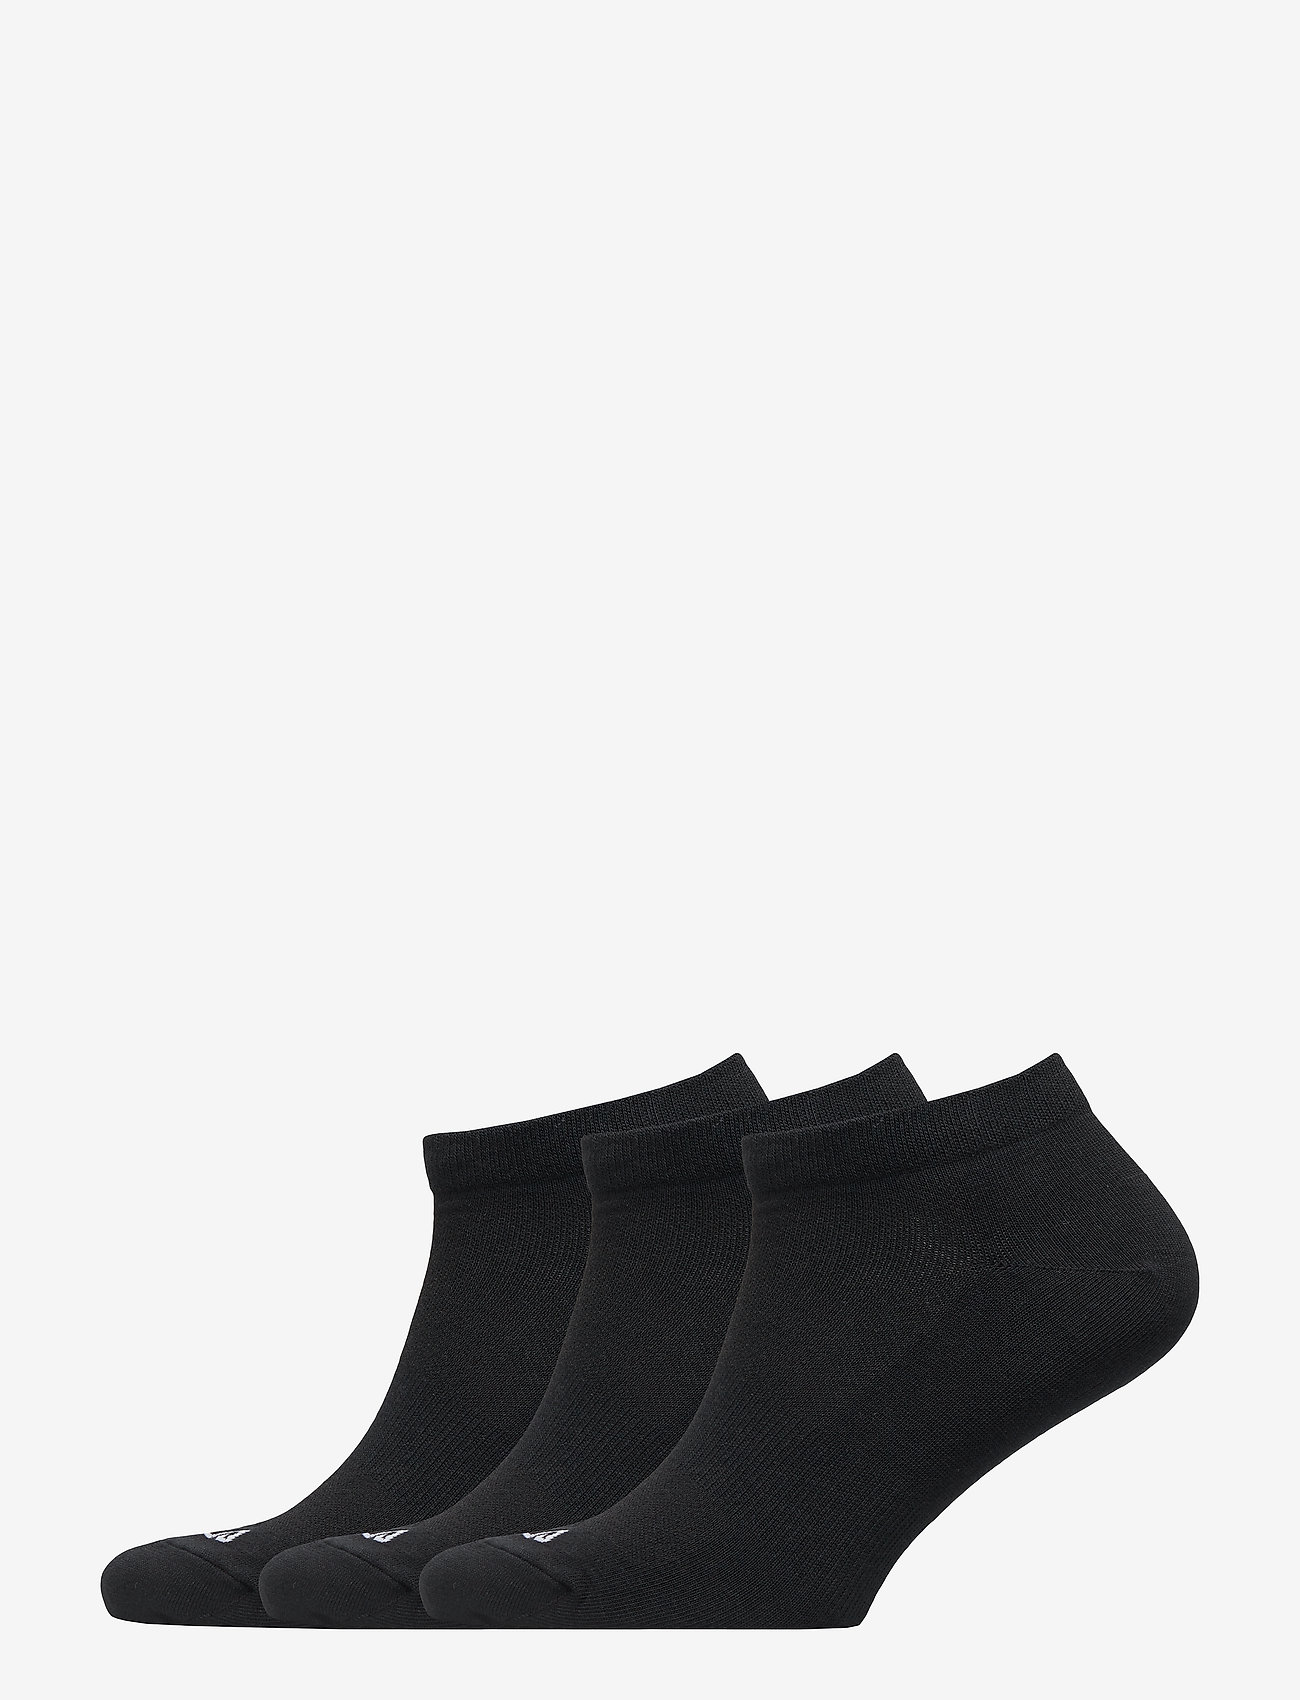 Bula - SAFE SOCK 3PK - reguläre strümpfe - black - 0